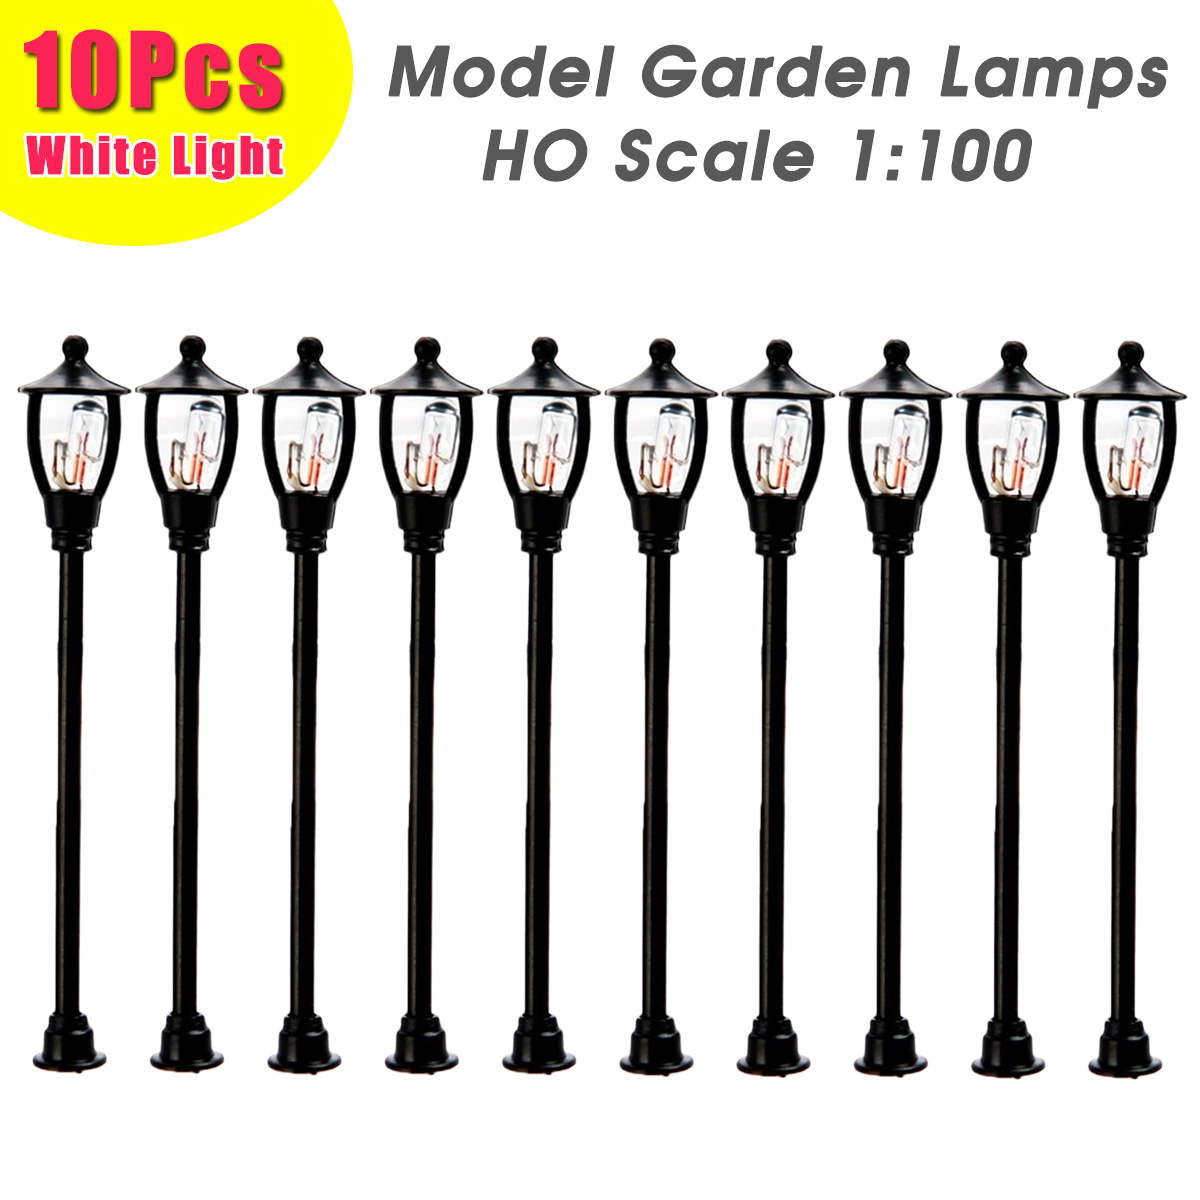 10pcs Model Garden Lamps HO Scale 1:100 Black Model Layout Single Head Garden Retro Street Lights Lamppost Landscape Light Model